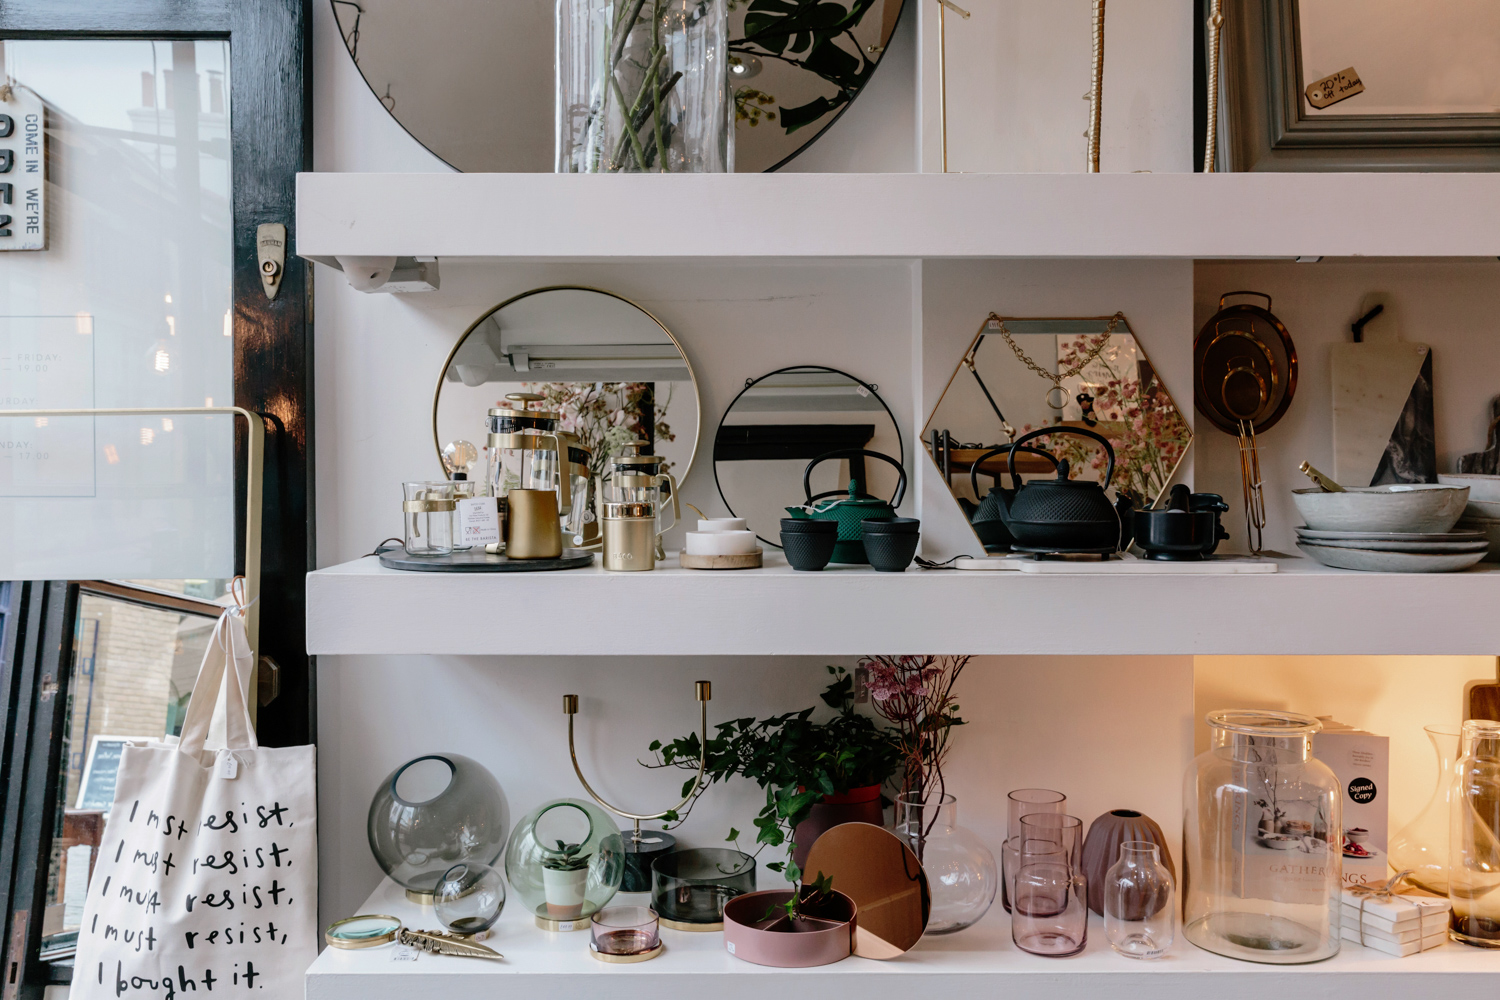 Shelves stocked with homewares at HAYGEN